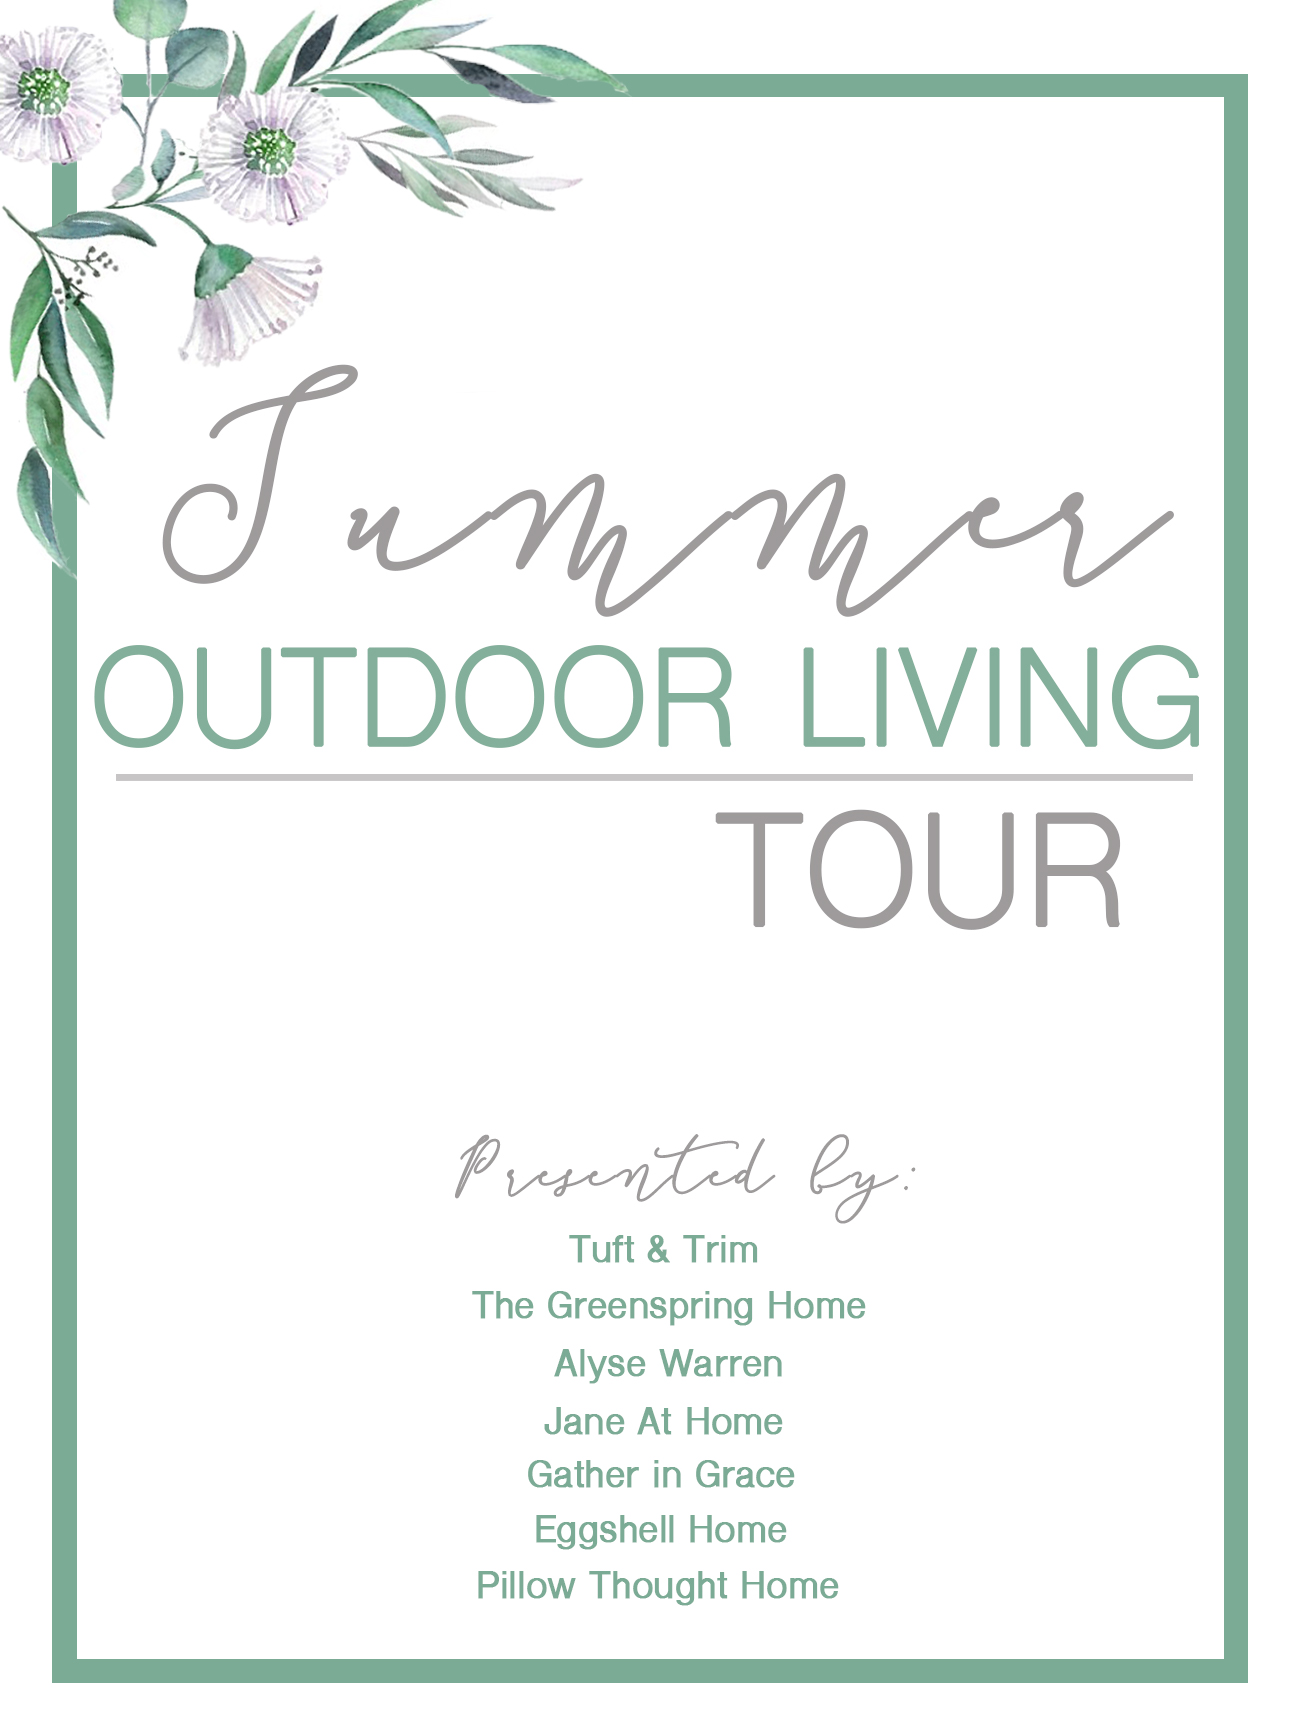 ummer Outdoor Living Tour: Before and After with Tuft & Trim